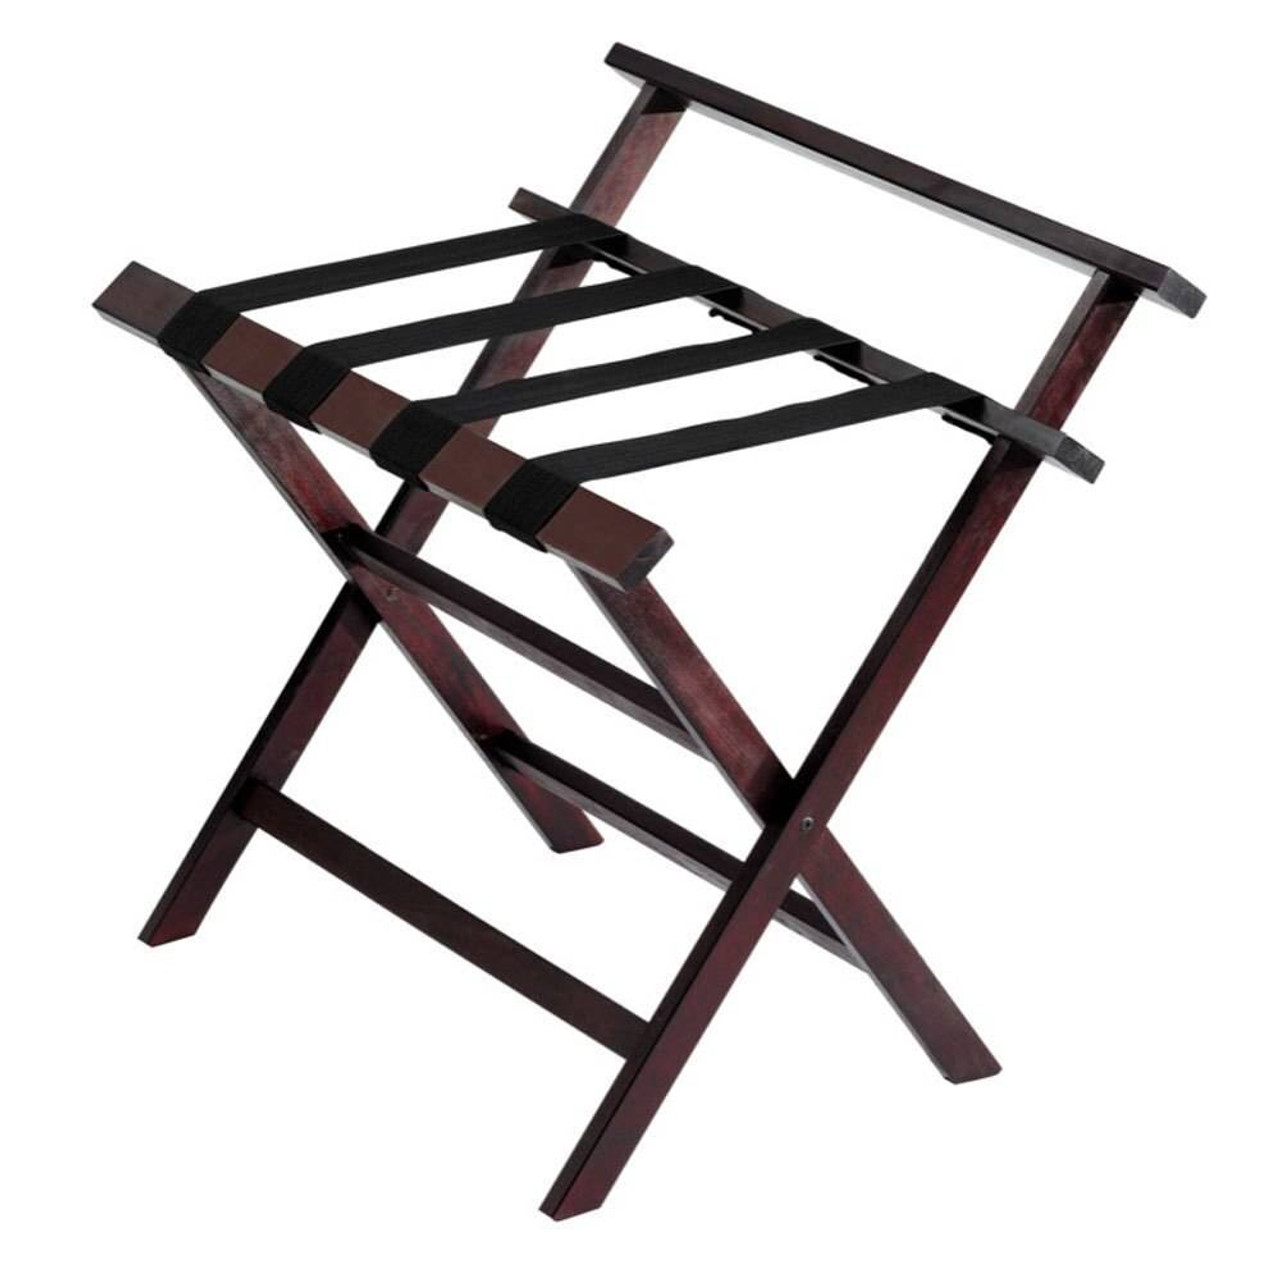 HOSPITALITY 1 SOURCE HOSPITALITY 1 SOURCE or PRESTIGE WOODEN LUGGAGE RACK or BACKREST or BLACK STRAPS or DARK CHERRY FINISH or 4 PER CASE